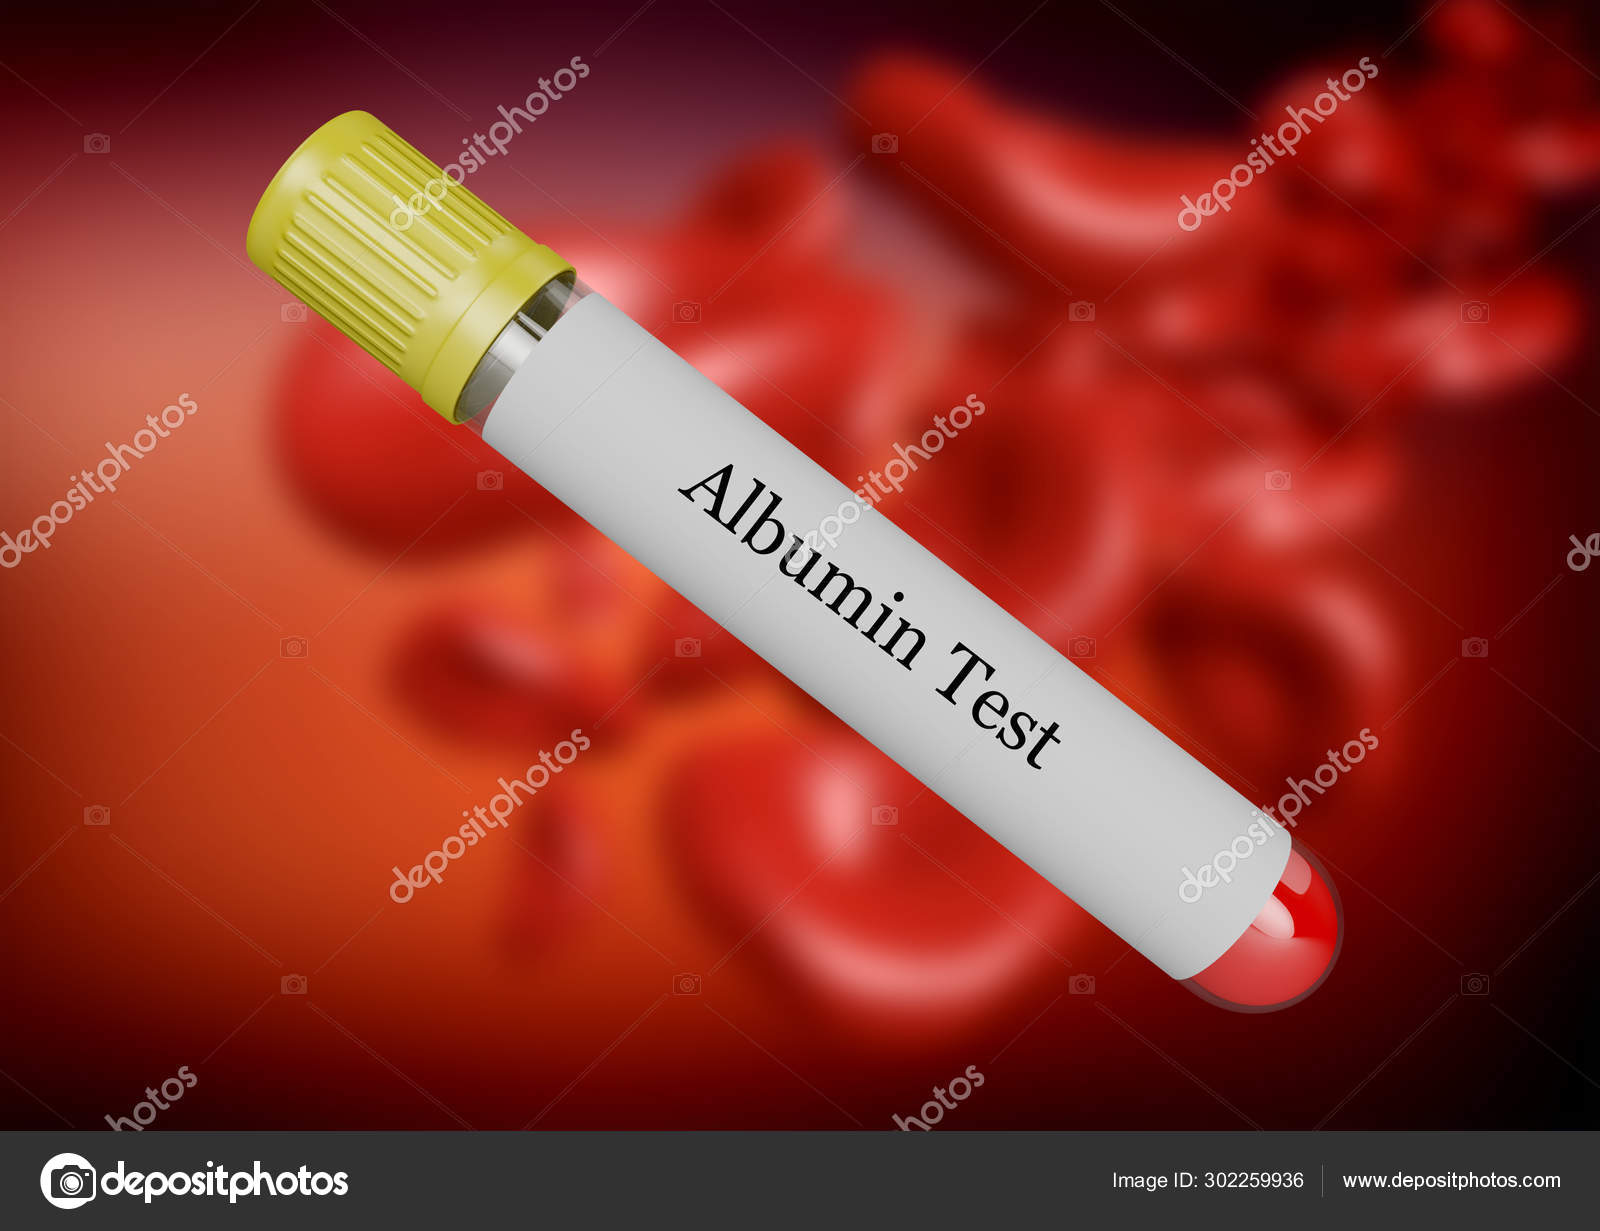 Albumin test in blood collected in test tube isolated by selective focus. 3d rendering